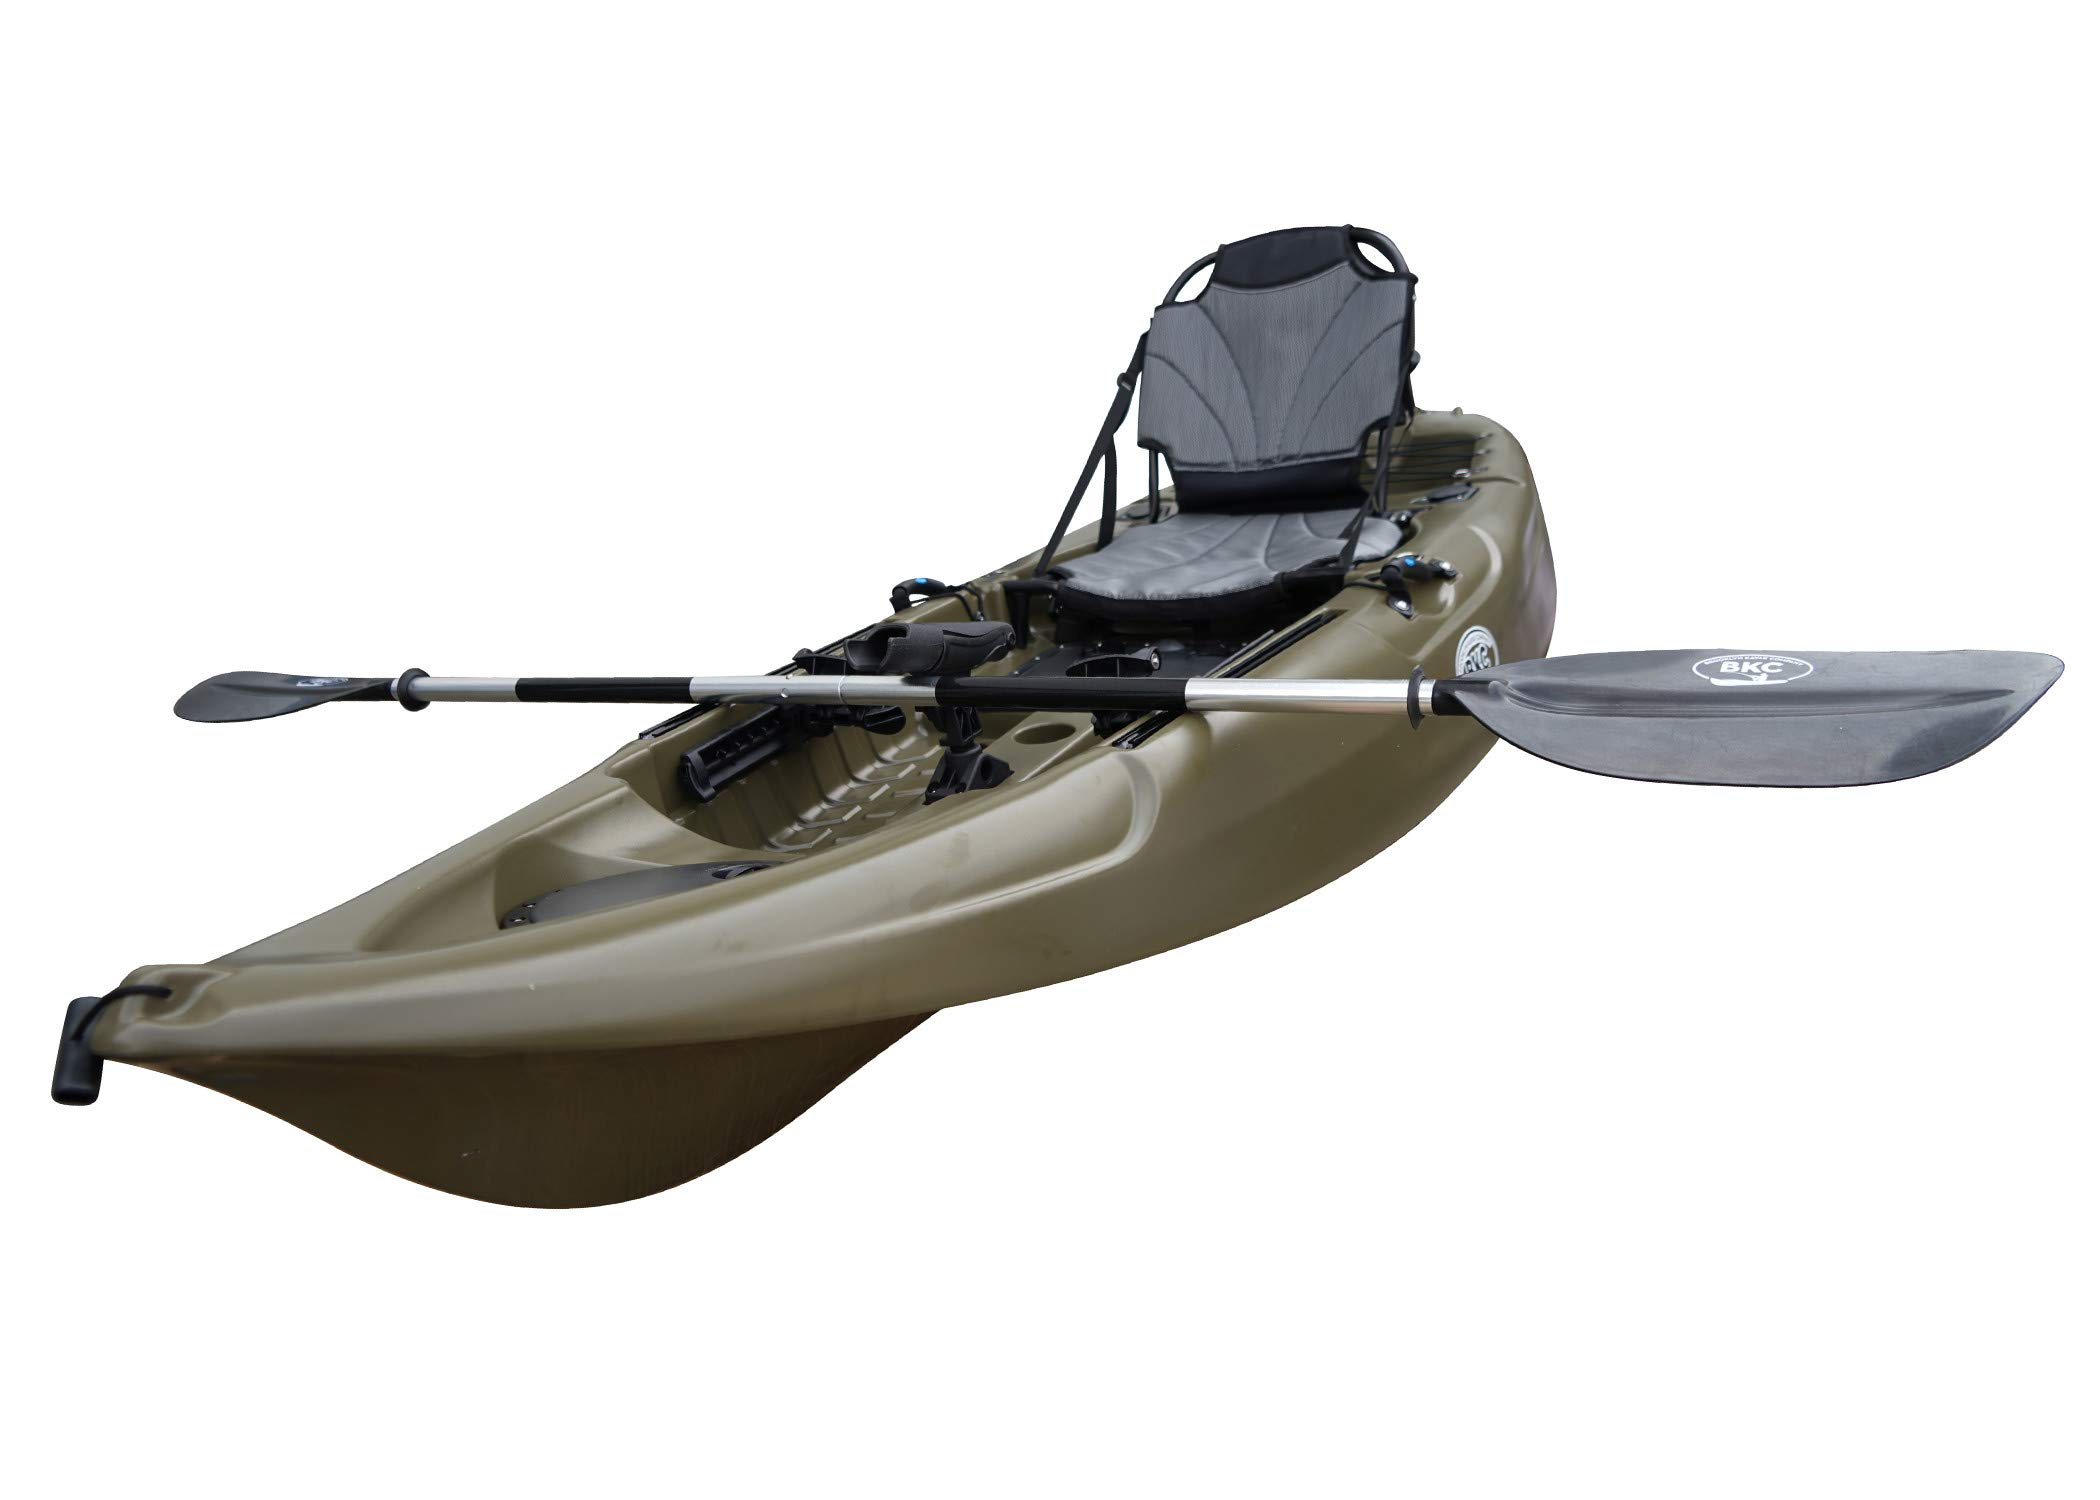 BKC FK285 9.5' Sit On Top Single Fishing Kayak W/Upright Back Support Aluminum Frame Seat, Paddle Included Solo Sit-On-Top Angler Kayak by Brooklyn Kayak Company